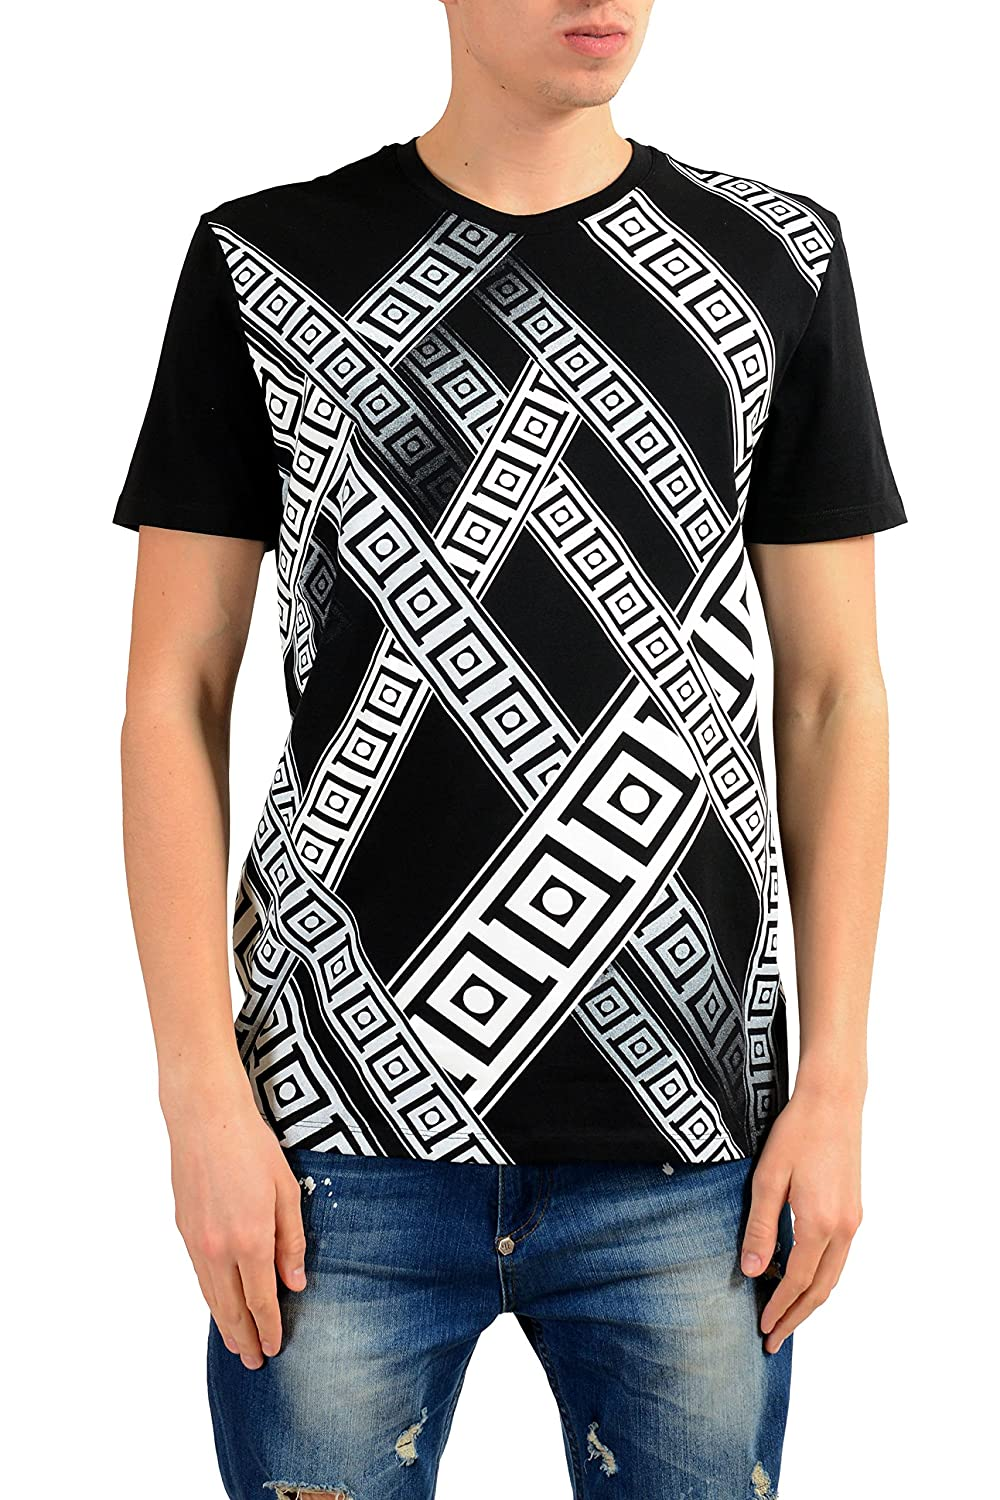 0bae7231540 Top1  Versace Collection Men s Black Graphic Print T-Shirt US L IT 52